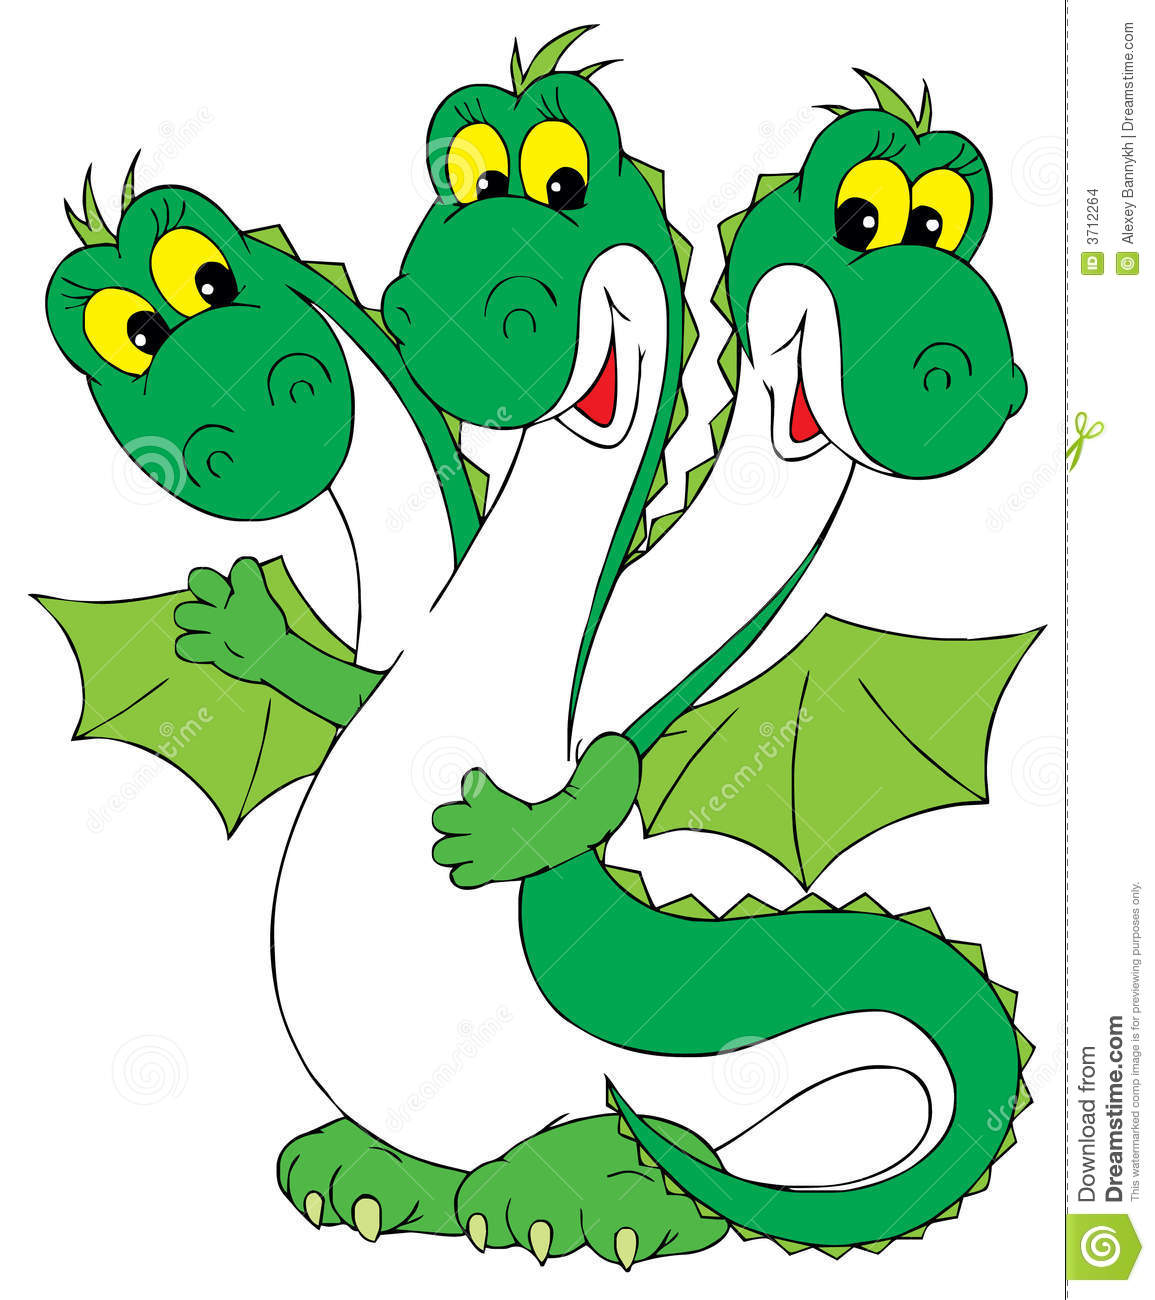 Dragons clipart 20 free Cliparts.